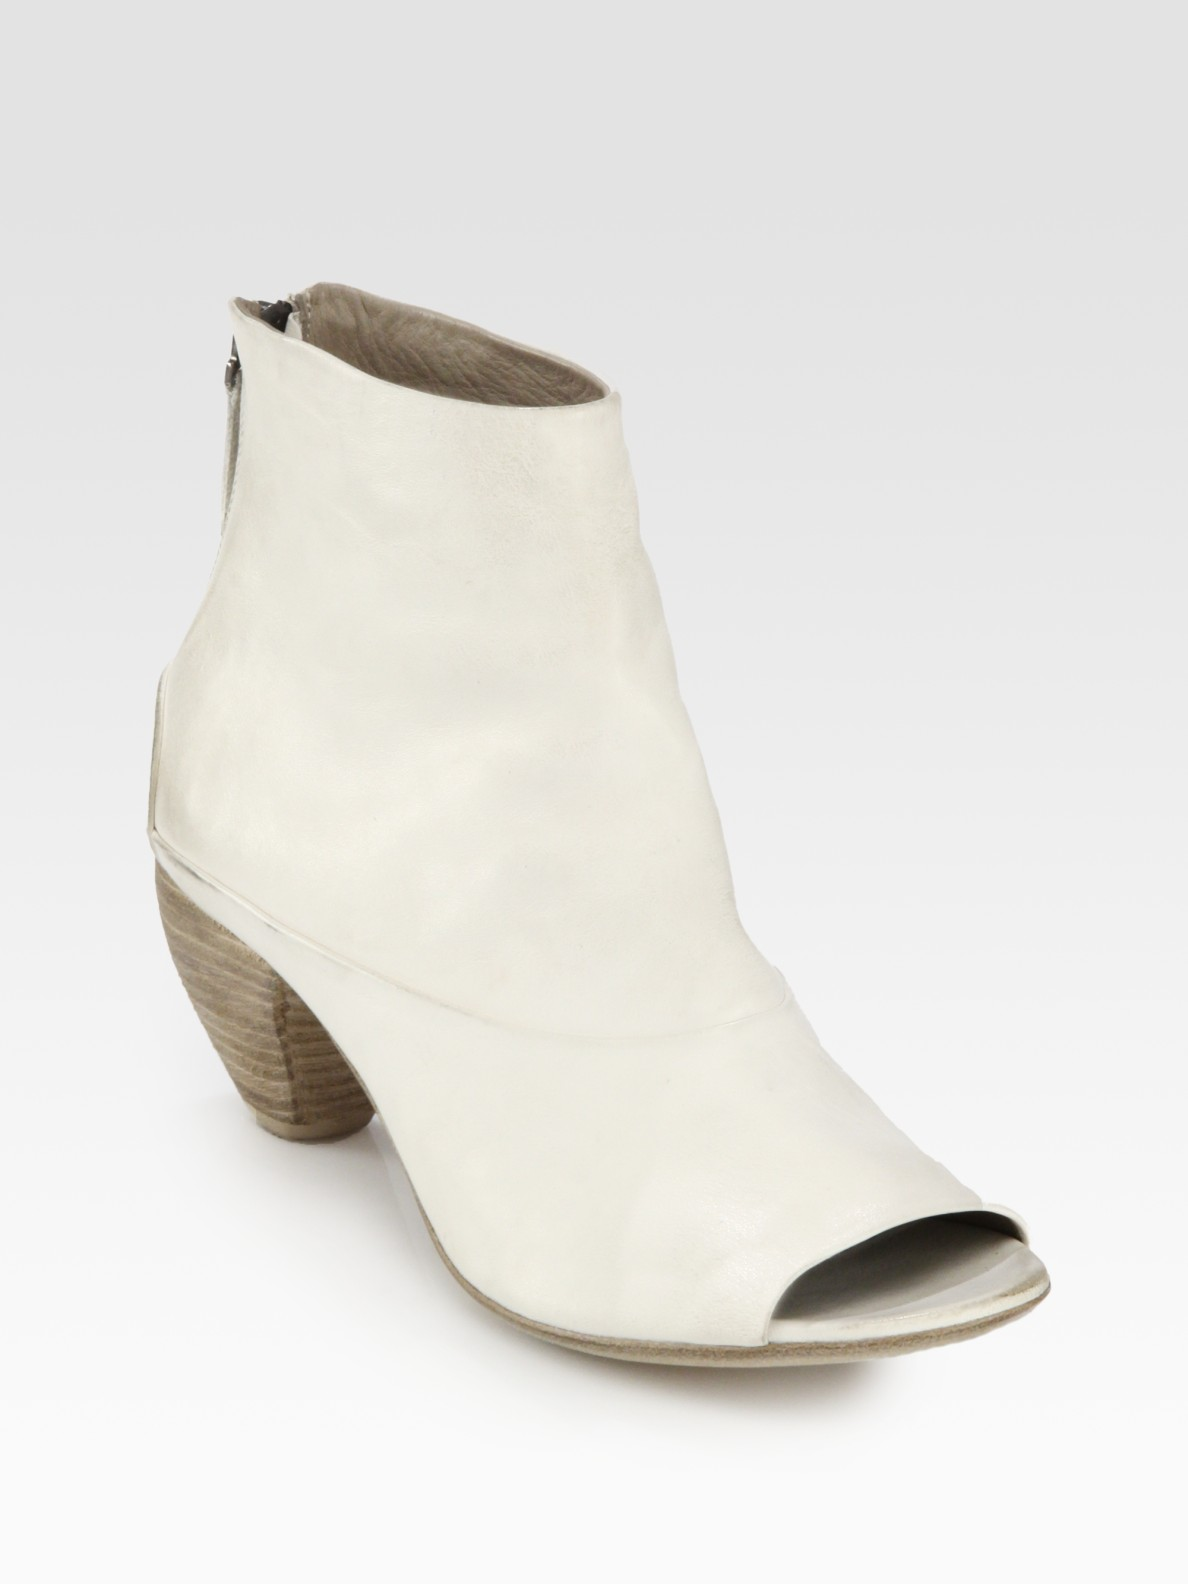 Marsèll Leather Ankle Boots in Natural | Lyst